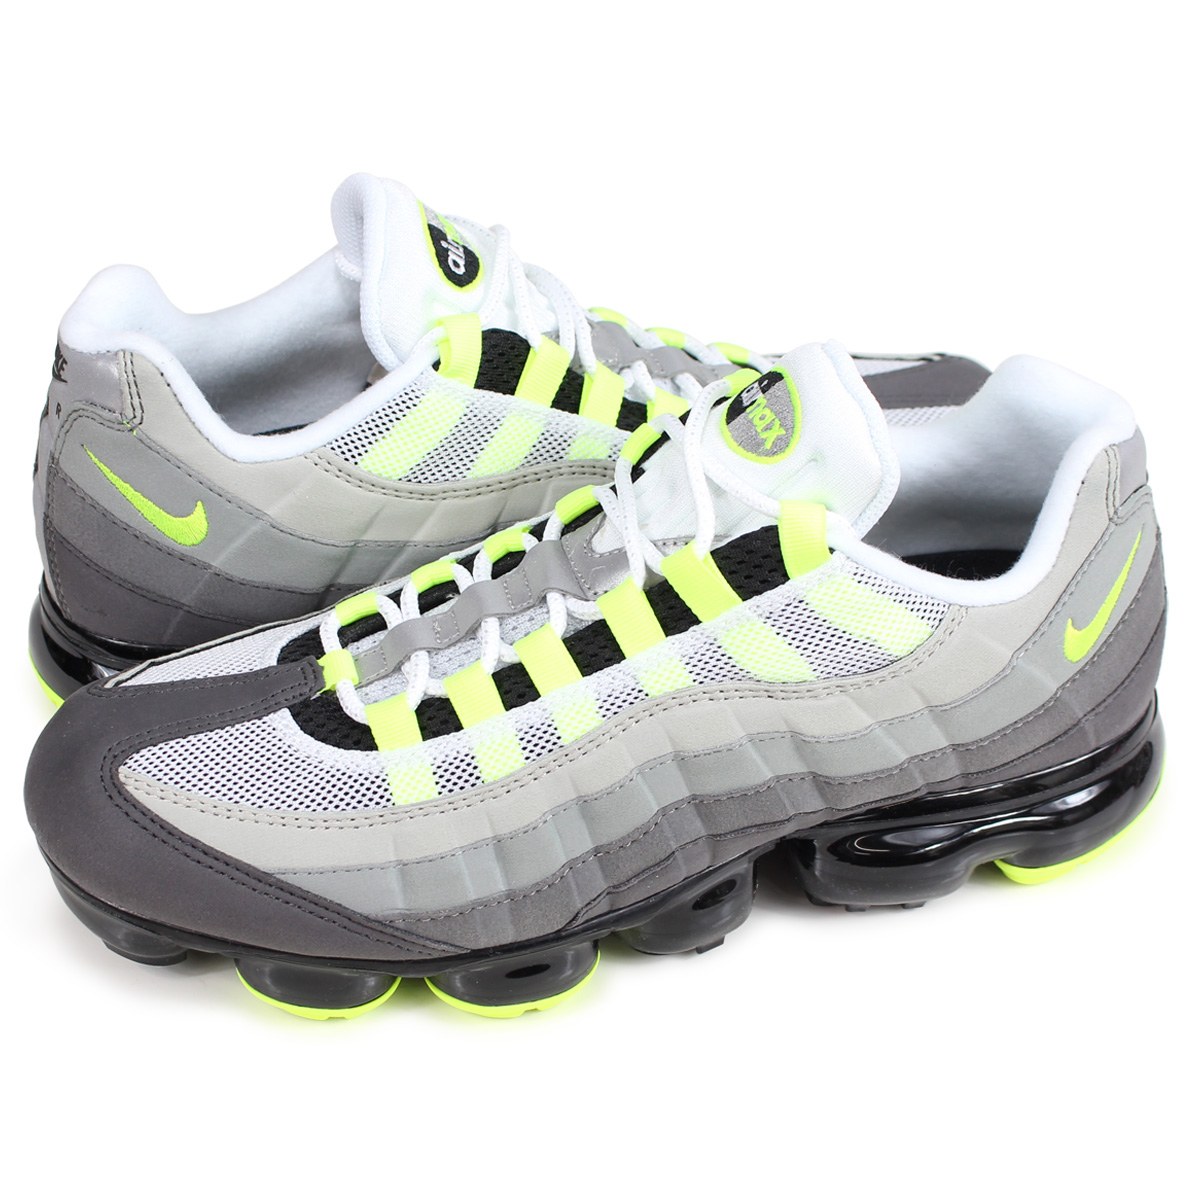 1703997033 ALLSPORTS: Nike NIKE air vapor max 95 sneakers men AIR VAPORMAX 95 NEON  AJ7292-001 neon yellow [the 5/16 additional arrival] [195] | Rakuten Global  Market